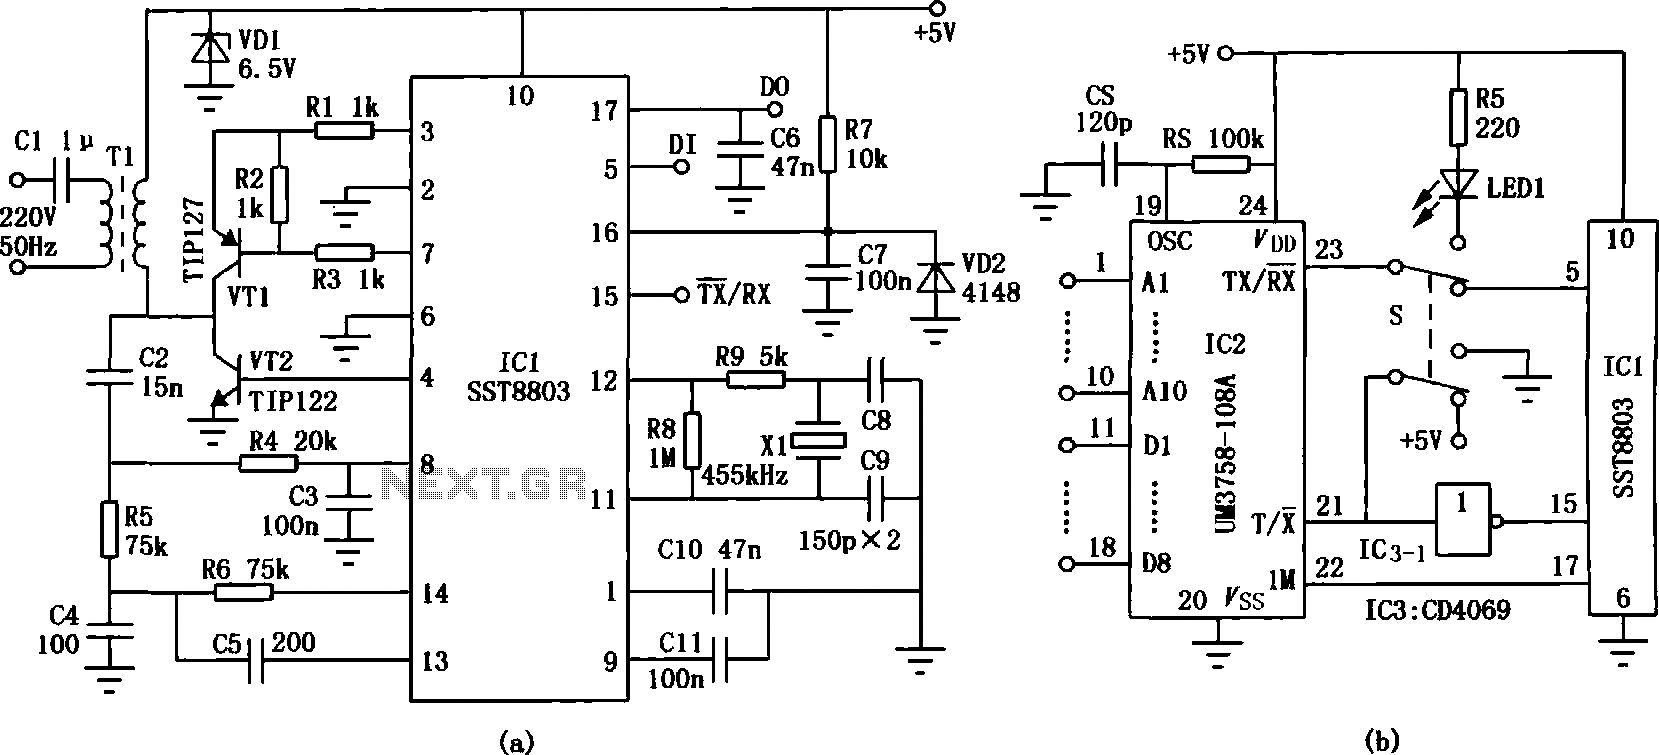 infrared wireless headphones circuit under infrared circuits